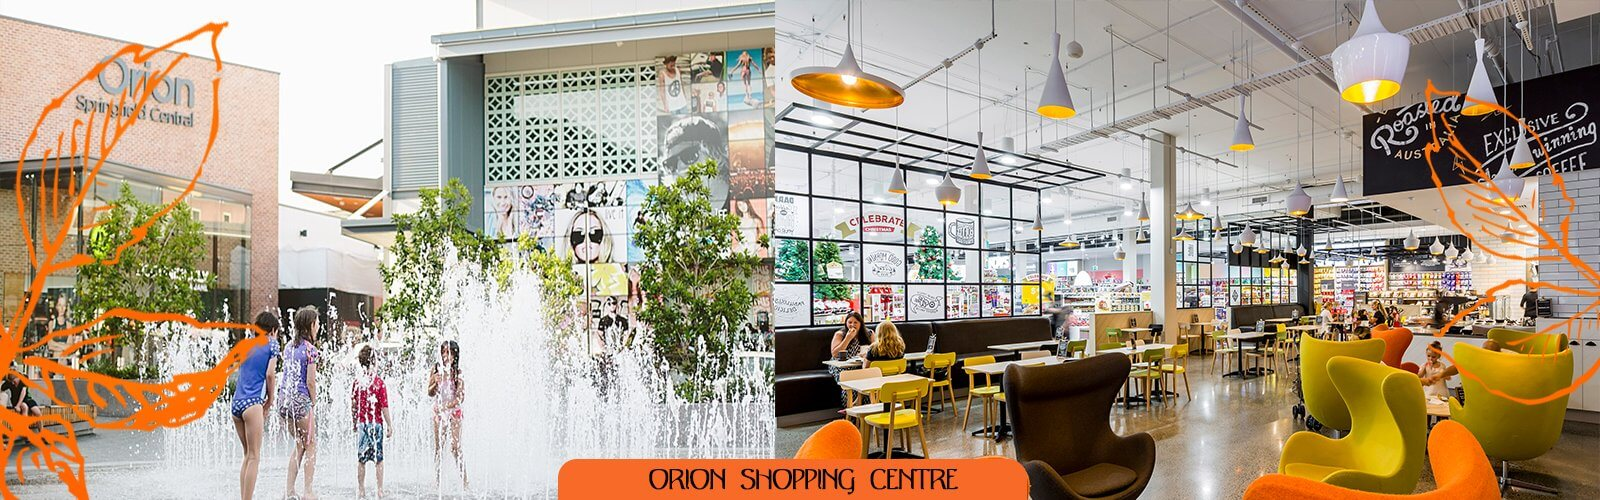 A dining room at Orion shopping centre